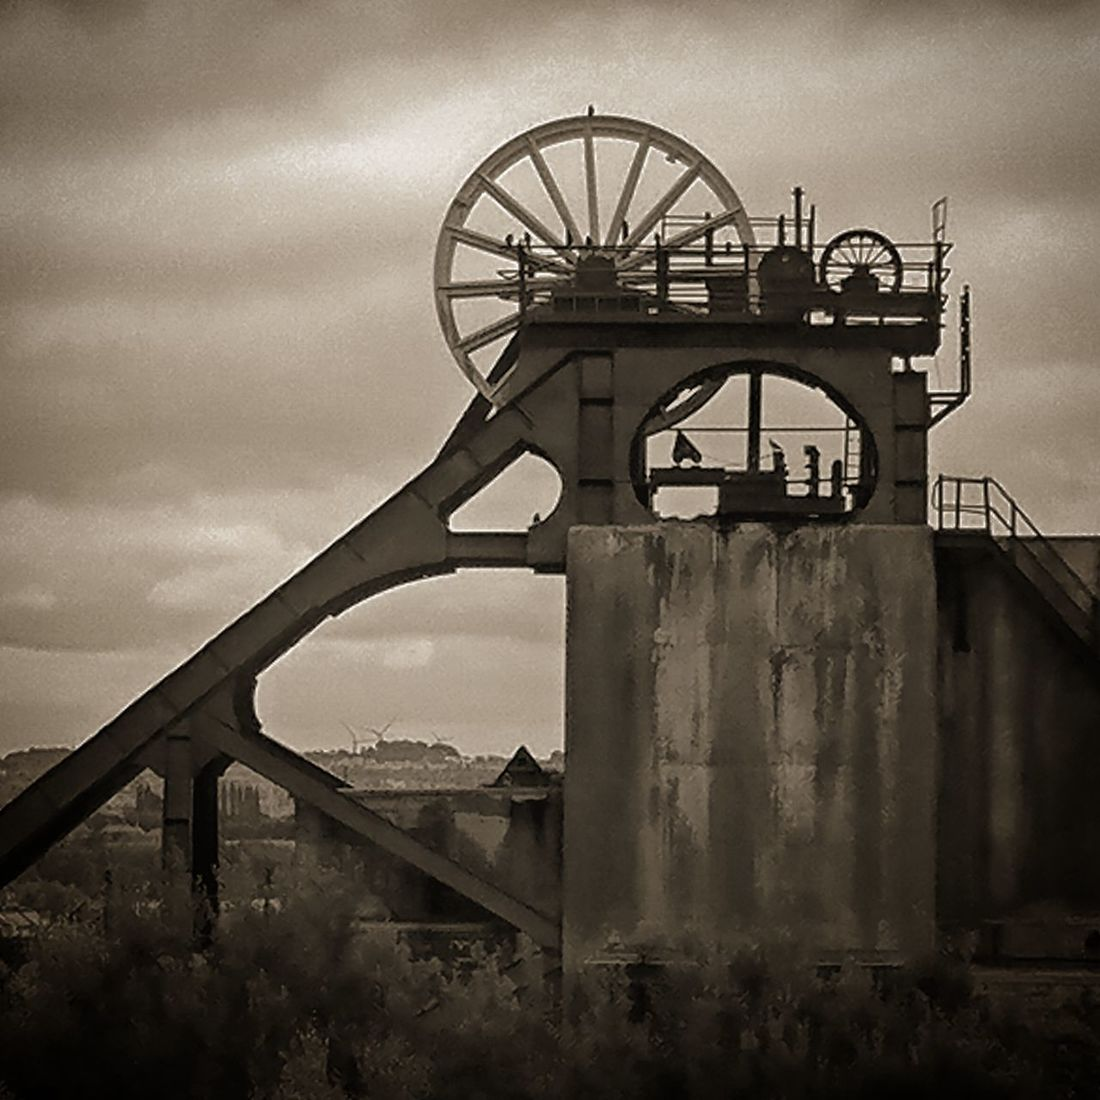 Bridge - Man Made Structure Business Finance And Industry Industry Outdoors No People Built Structure Golf Club Sky Factory Architecture Day City Metal Industry Mining Pit Winding Tower